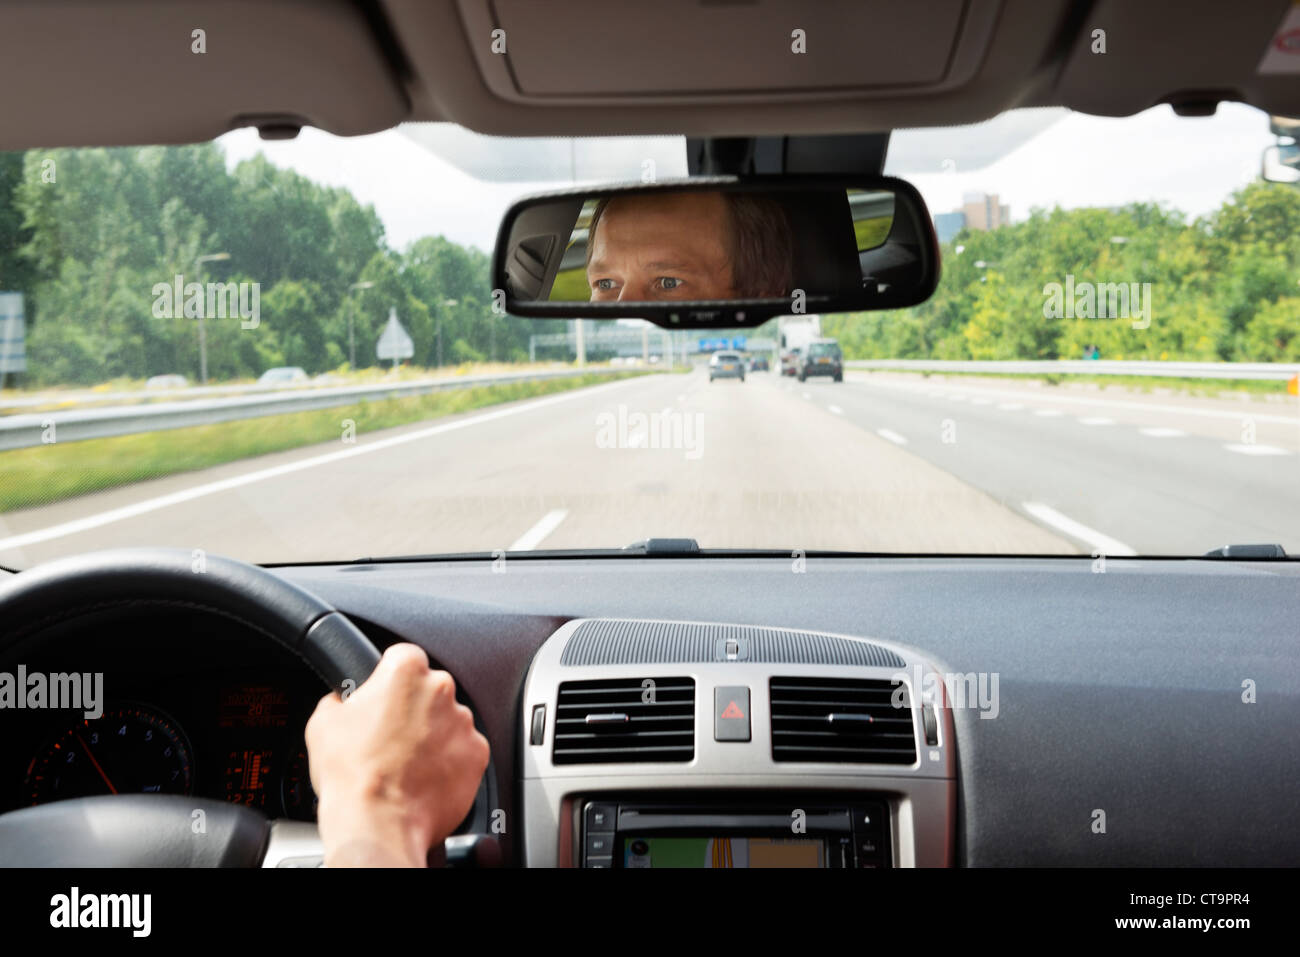 Man, driving a car, with his eyes reflected in the rear view mirror - Stock Image